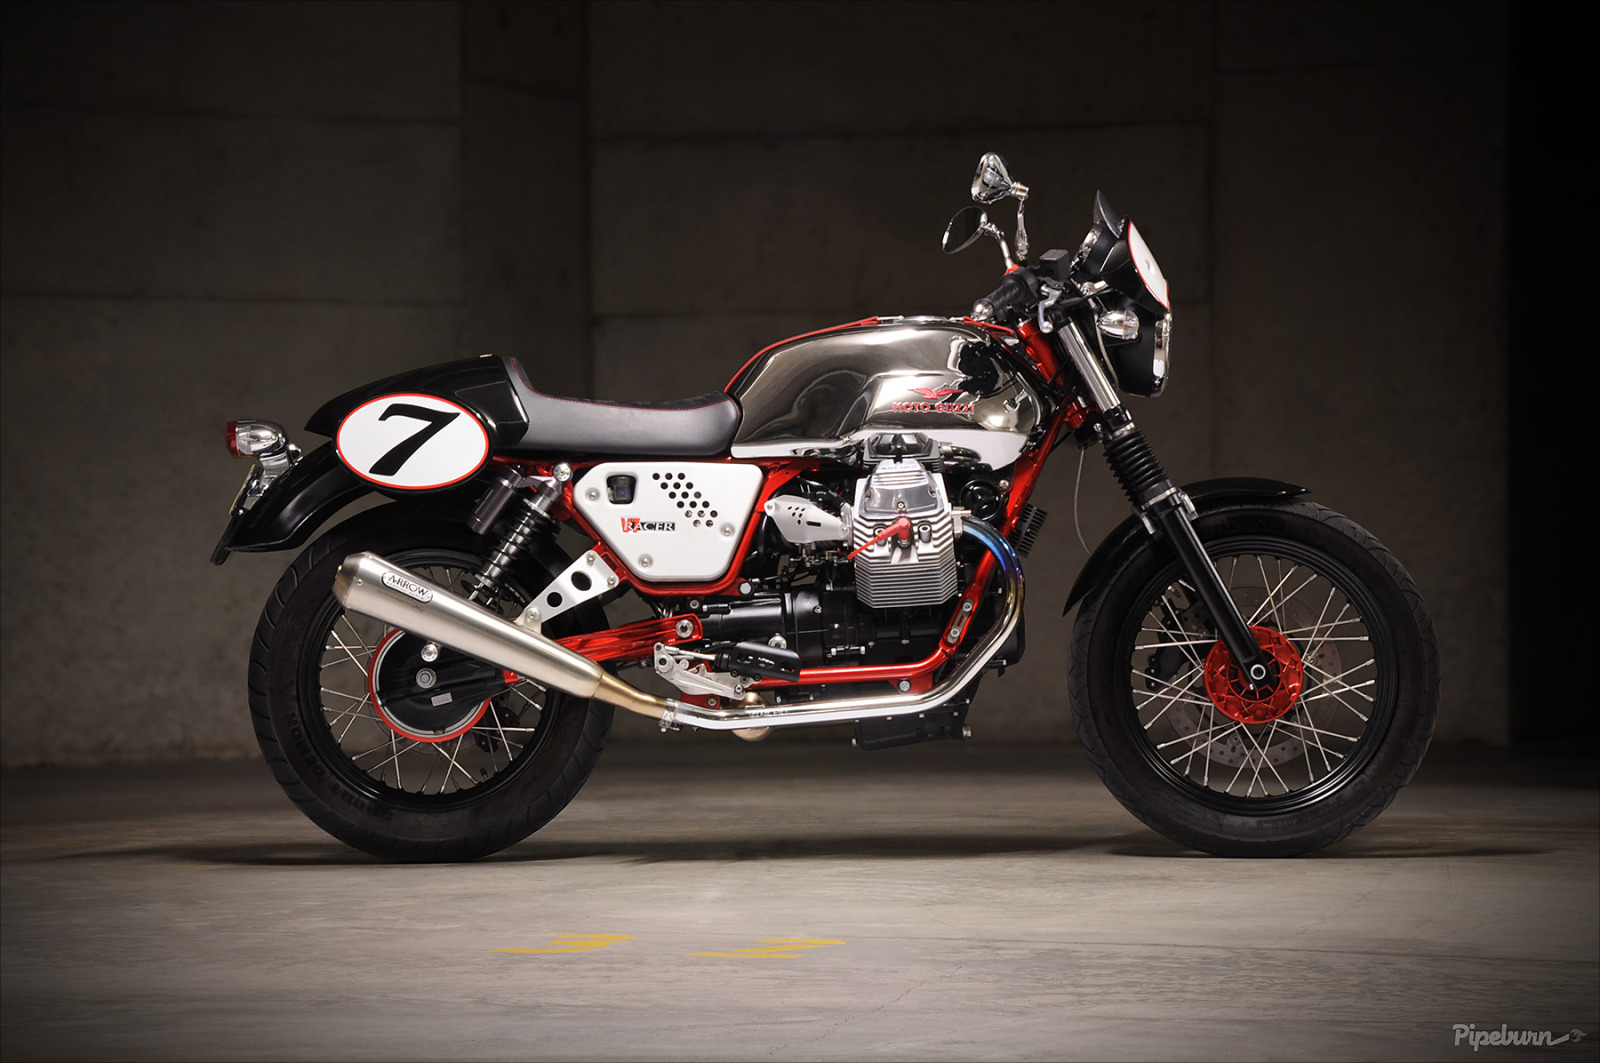 2013 Moto Guzzi V7 Racer: Pics, Specs And Information